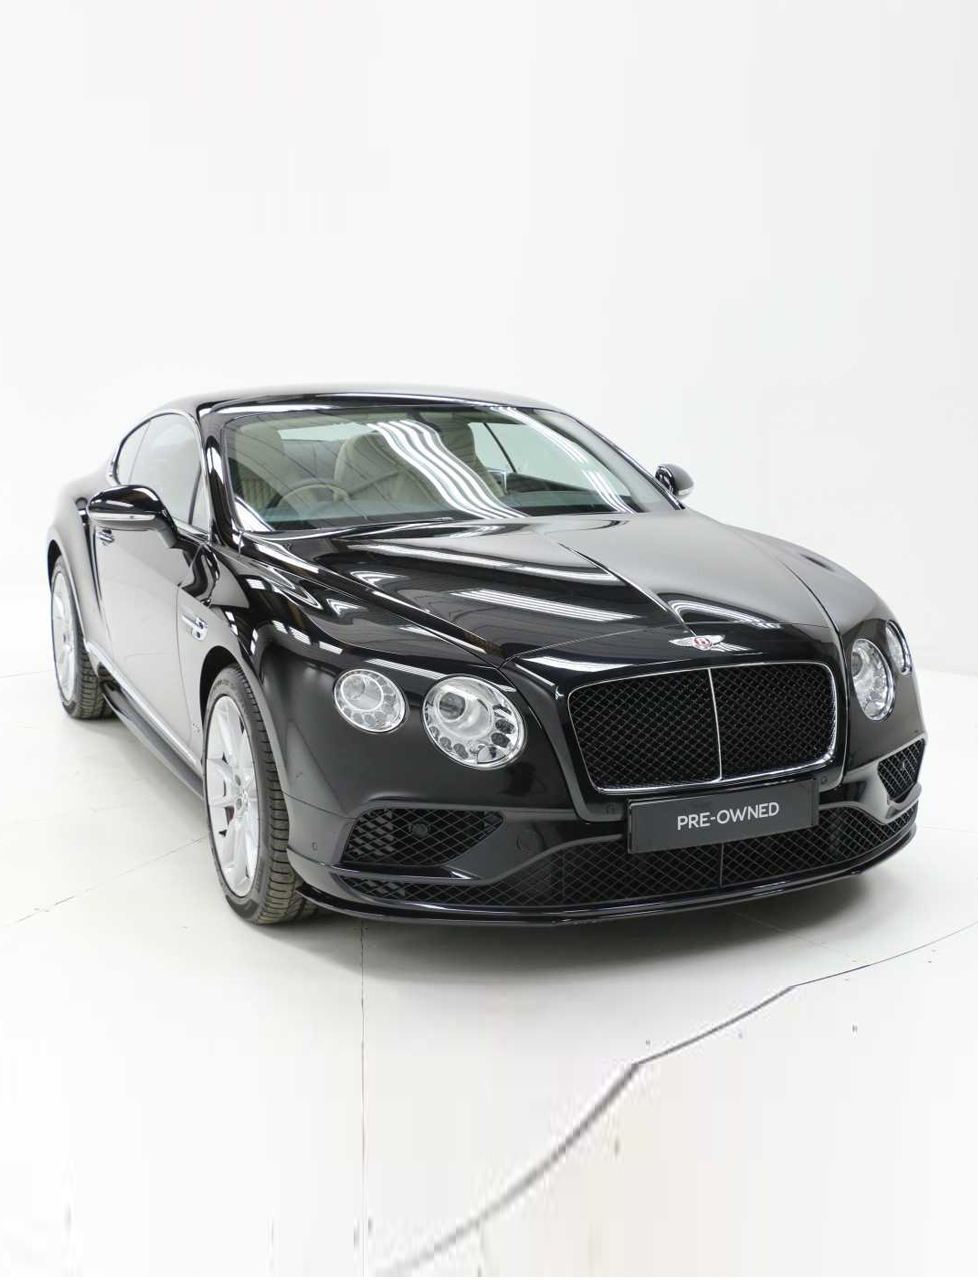 BENTLEY CONTINENTAL GT V8 4.0V8S BLACK 2016 – Allinex Supercar